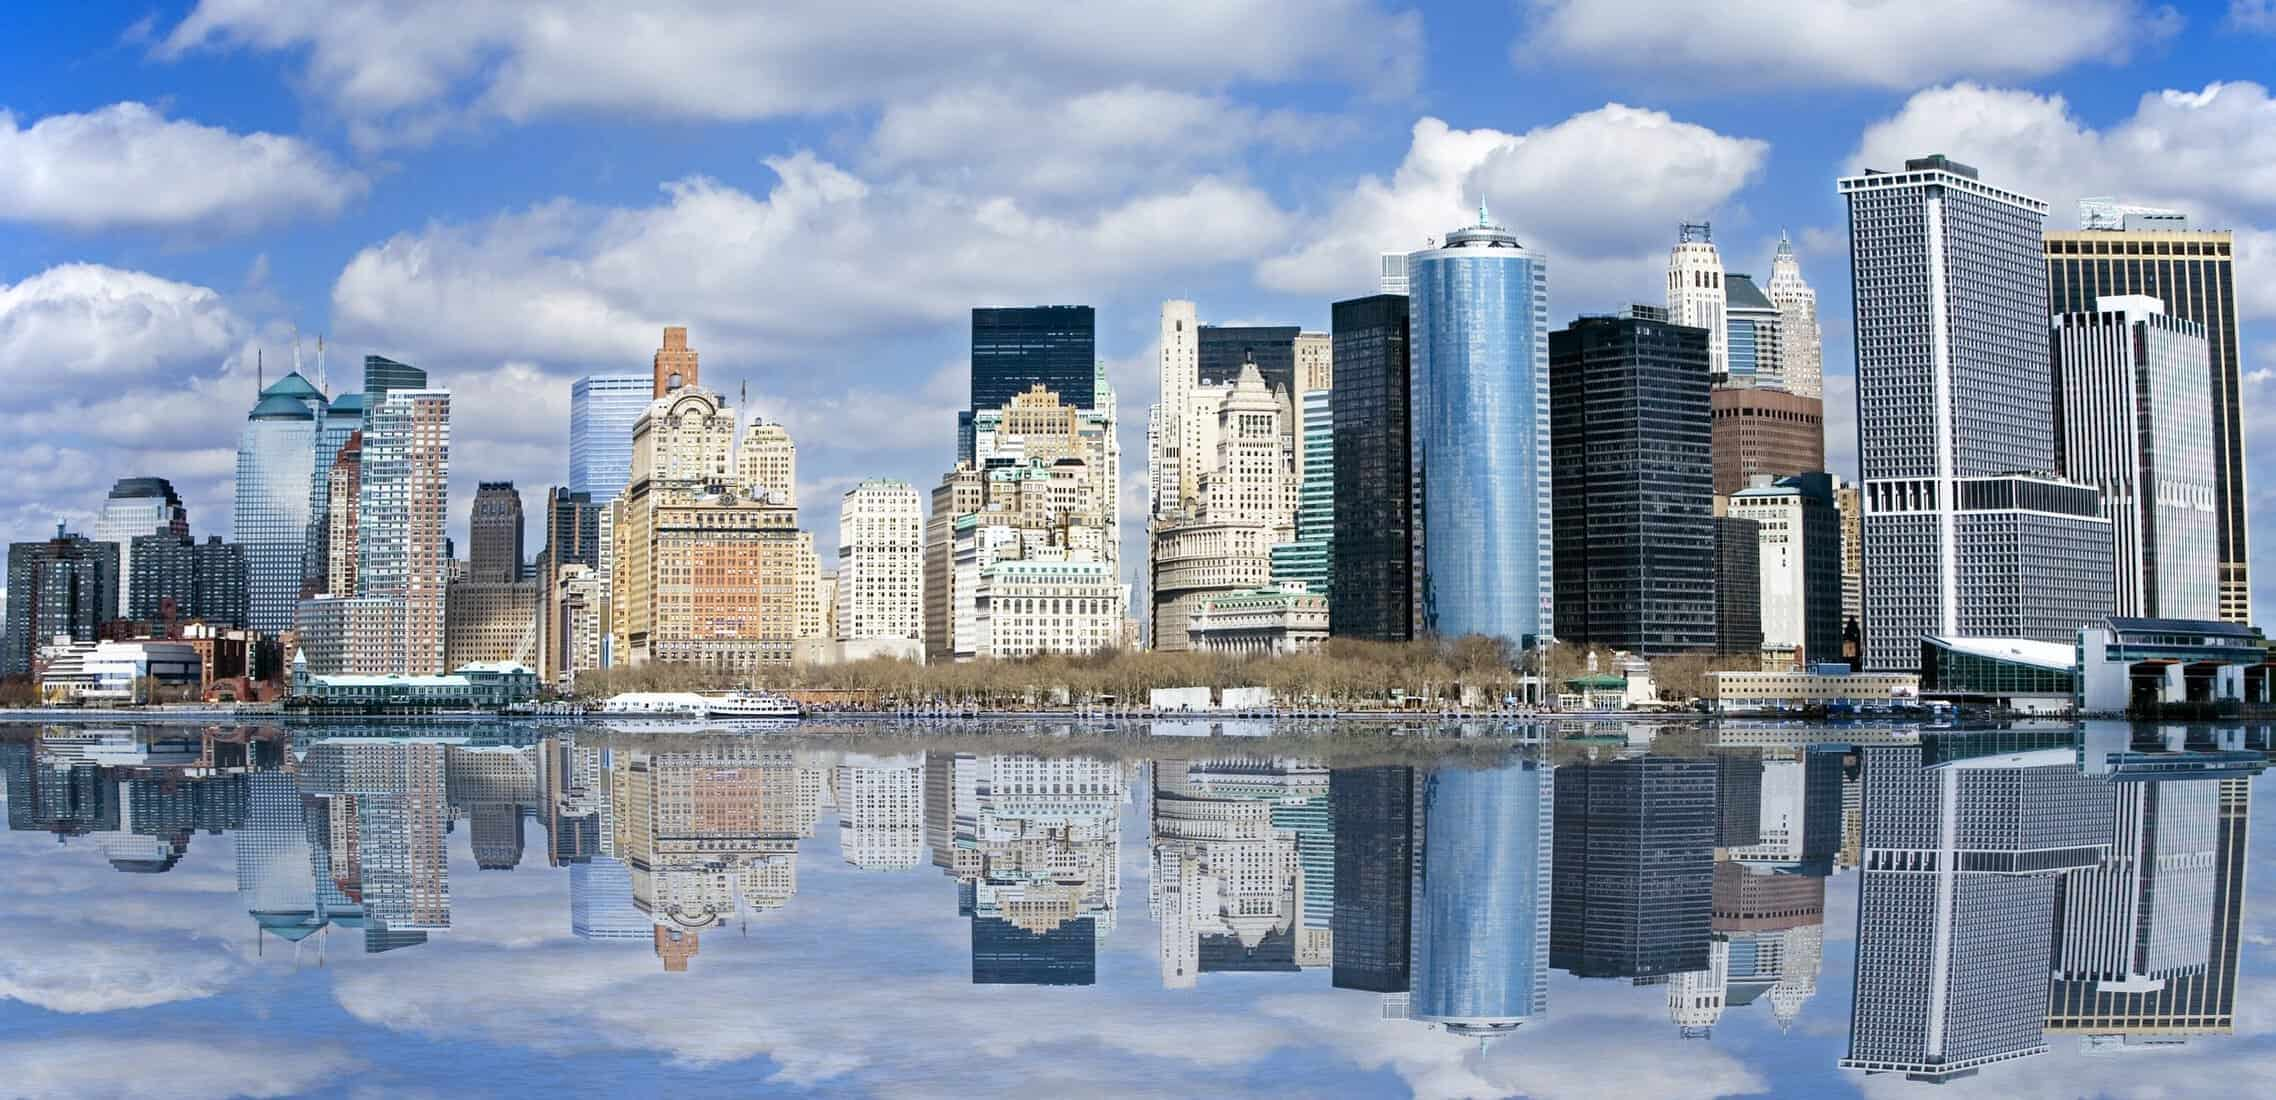 Lower end of Manhattan with reflection as seen from New York Harbor. Top 15 places to visit in the US